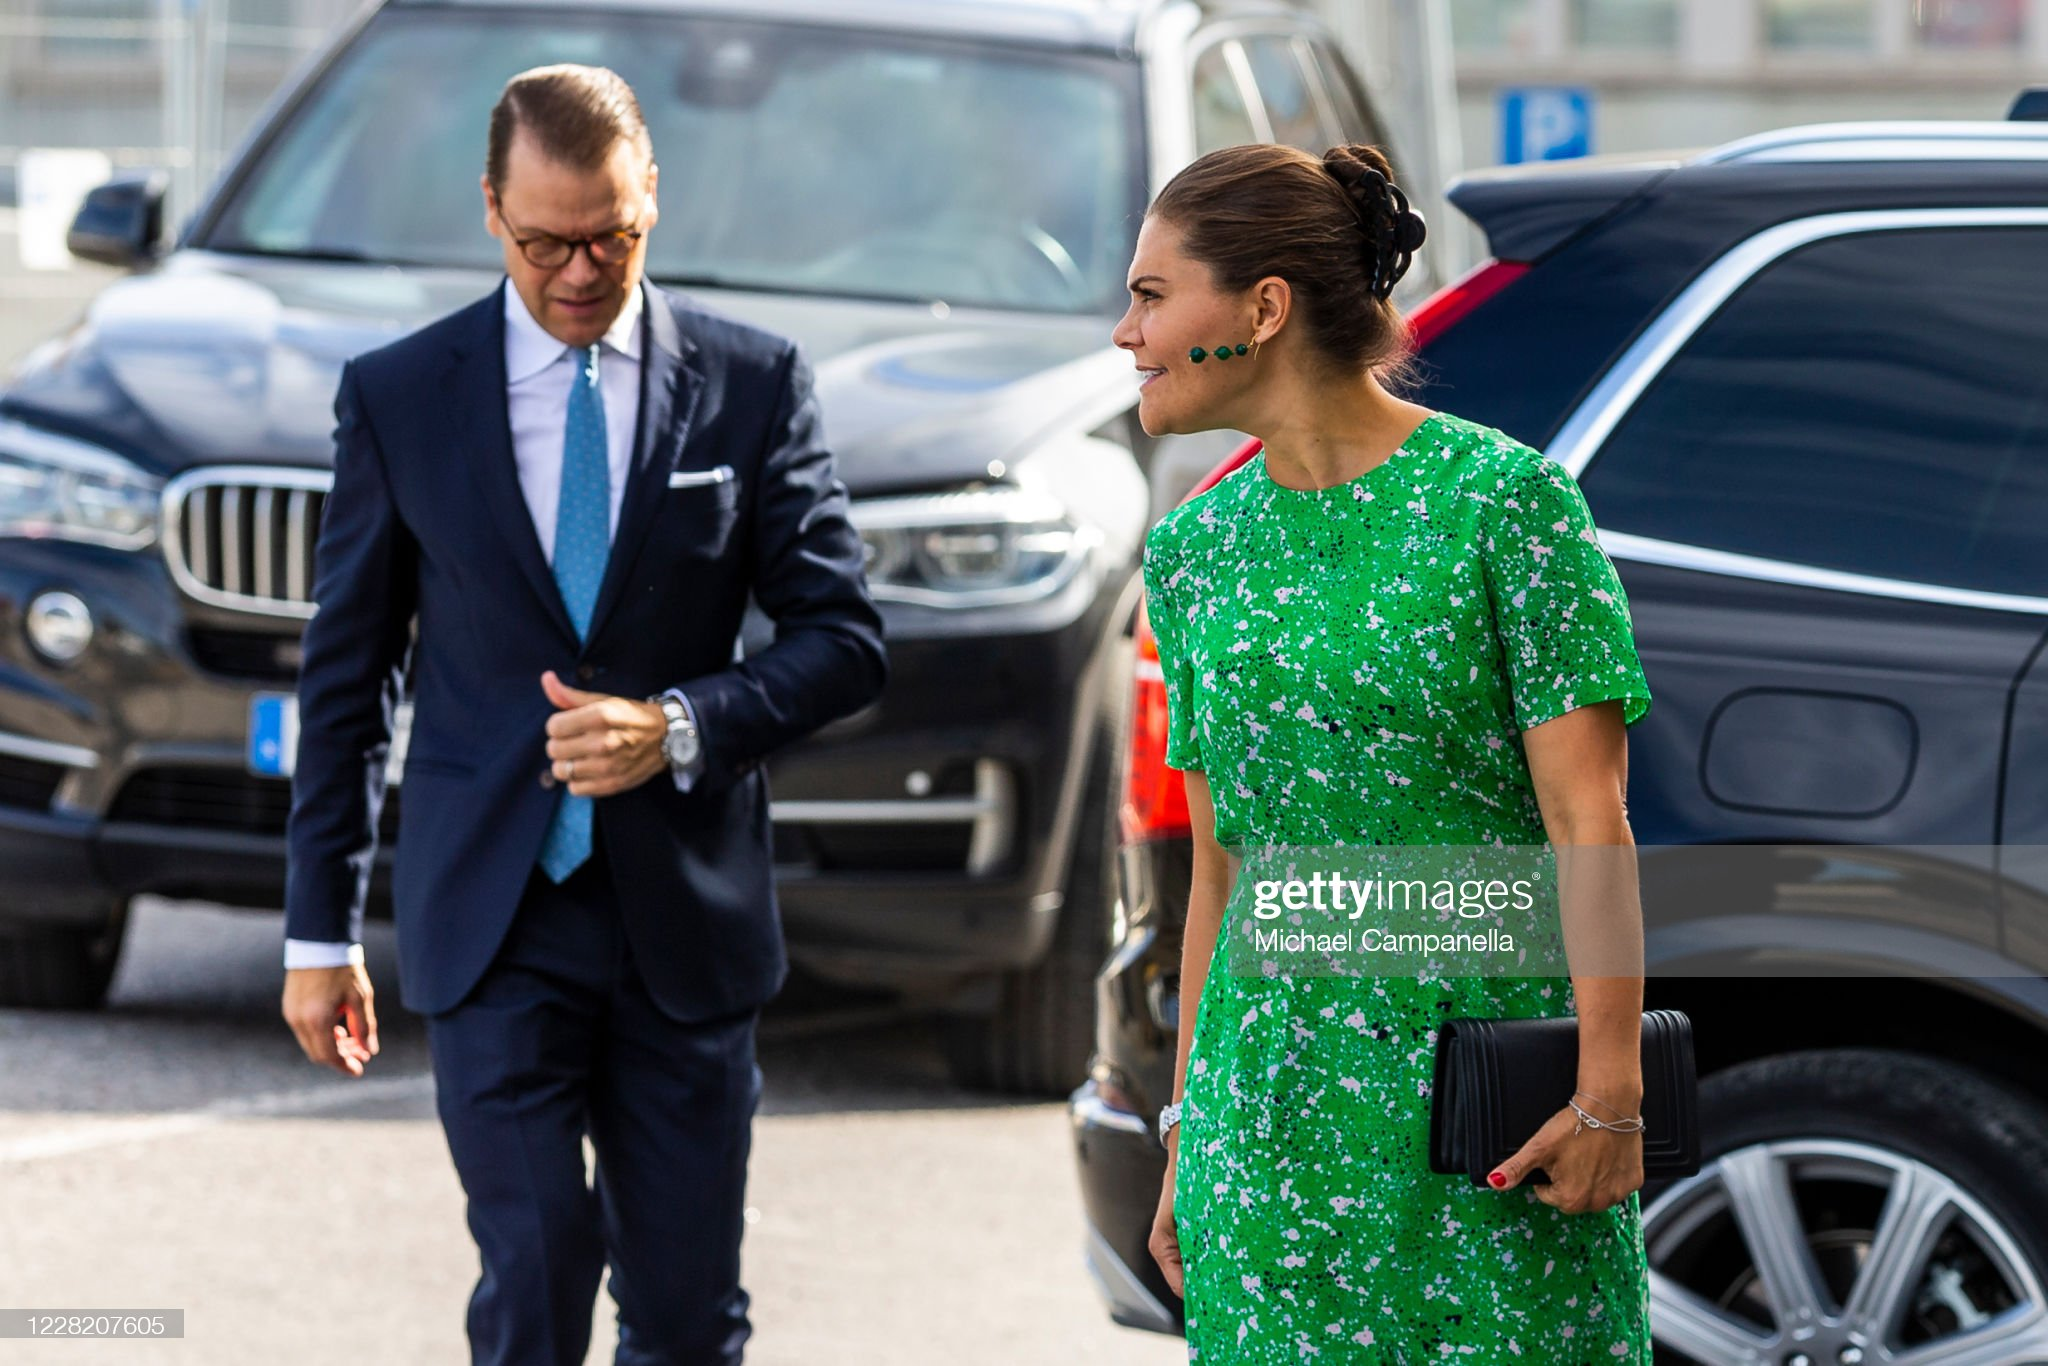 crown-princess-victoria-and-prince-daniel-of-sweden-visit-the-artist-picture-id1228207605